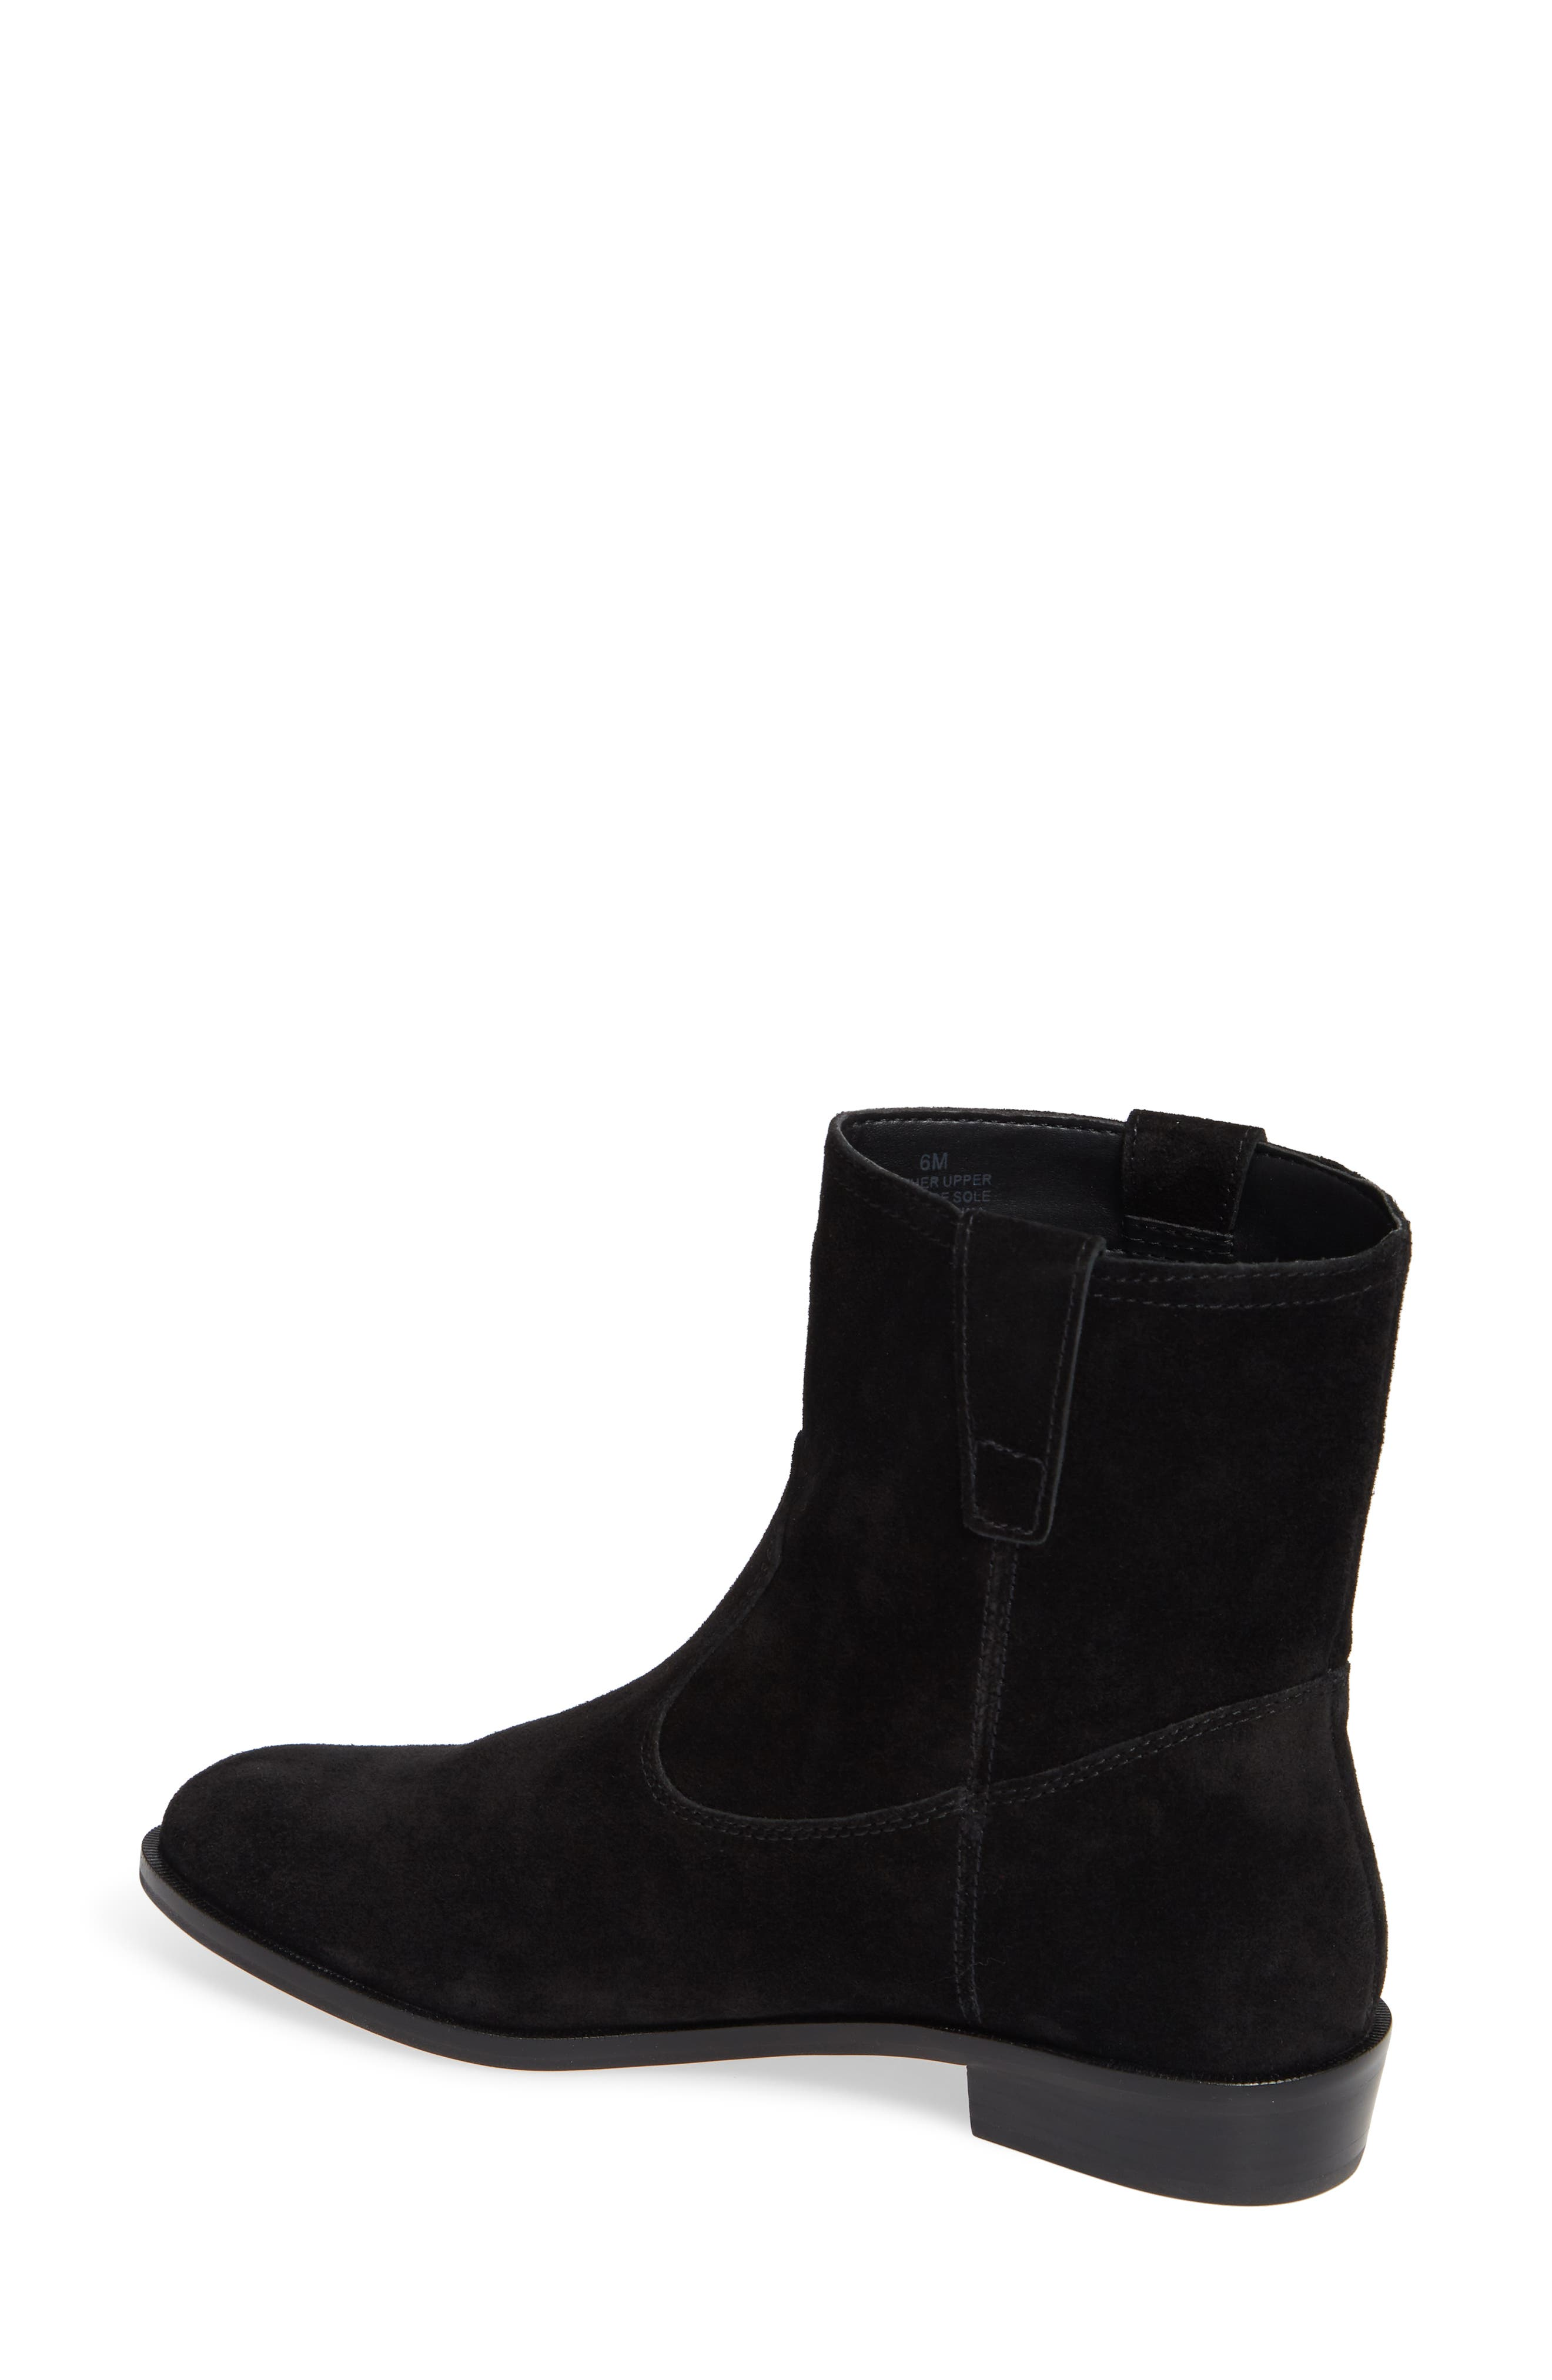 Chasidy Bootie,                             Alternate thumbnail 2, color,                             BLACK SUEDE